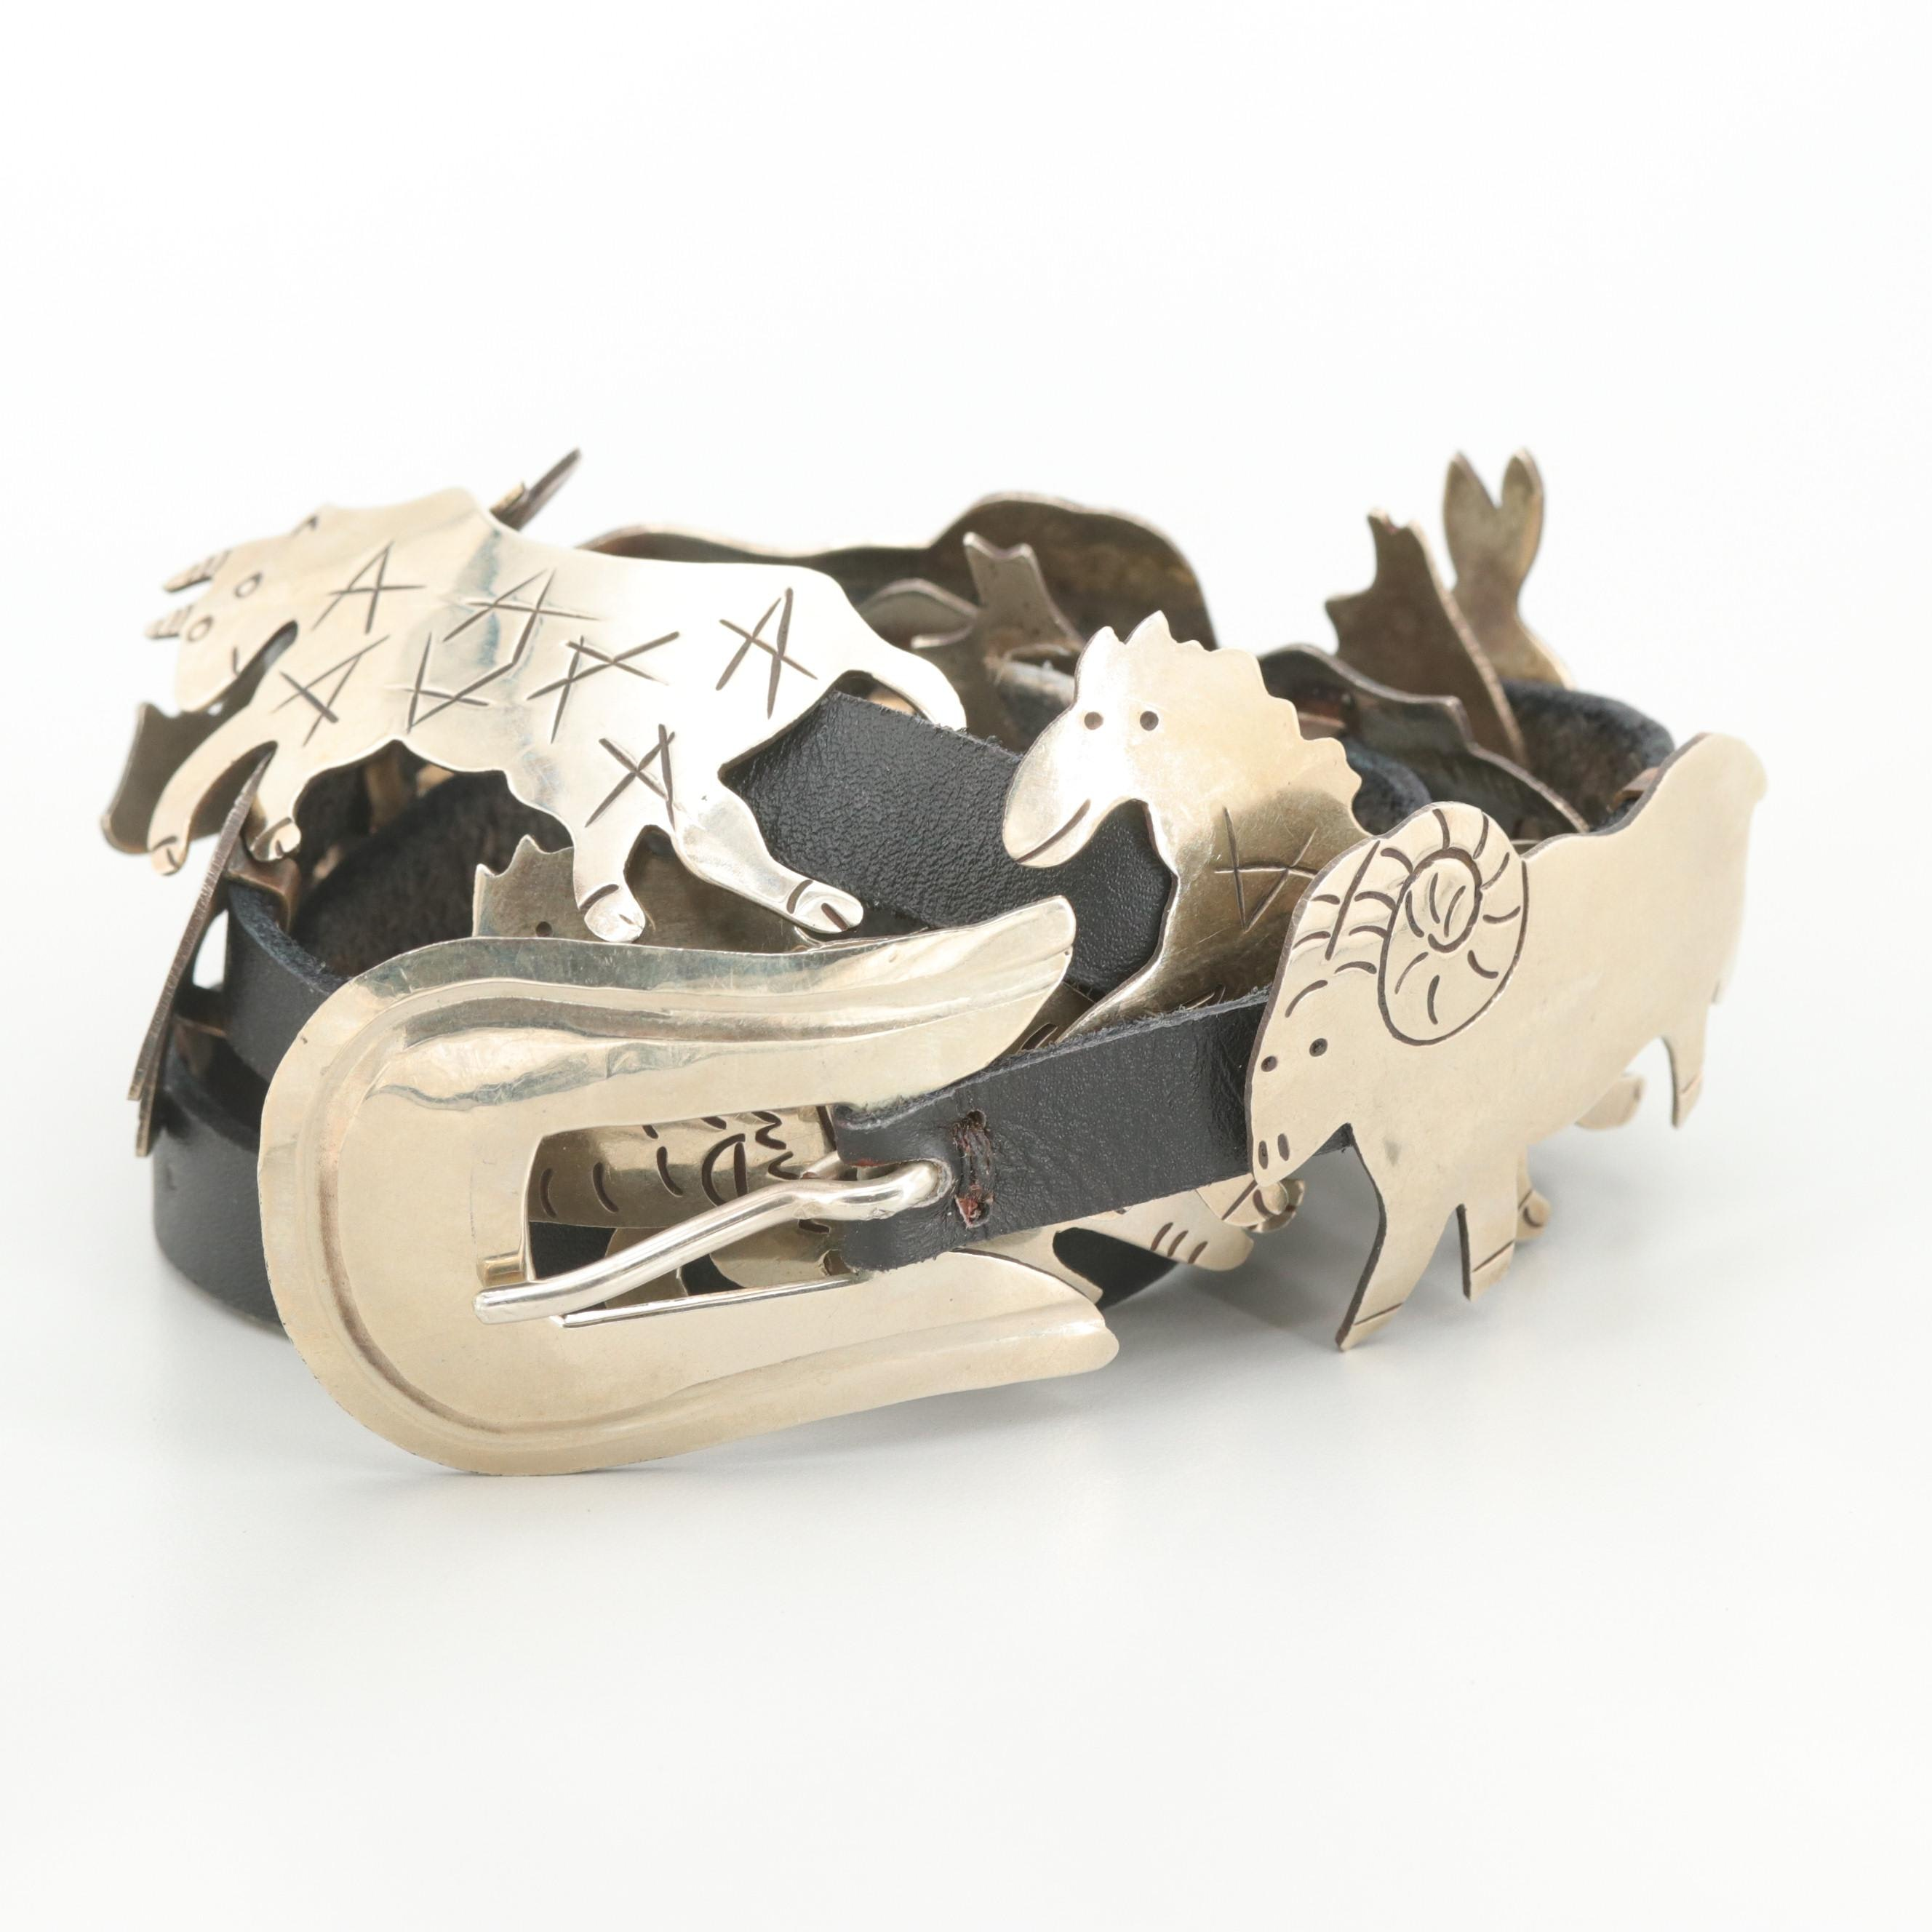 Alpaca Silver and Black Leather Belt in Animal Motif